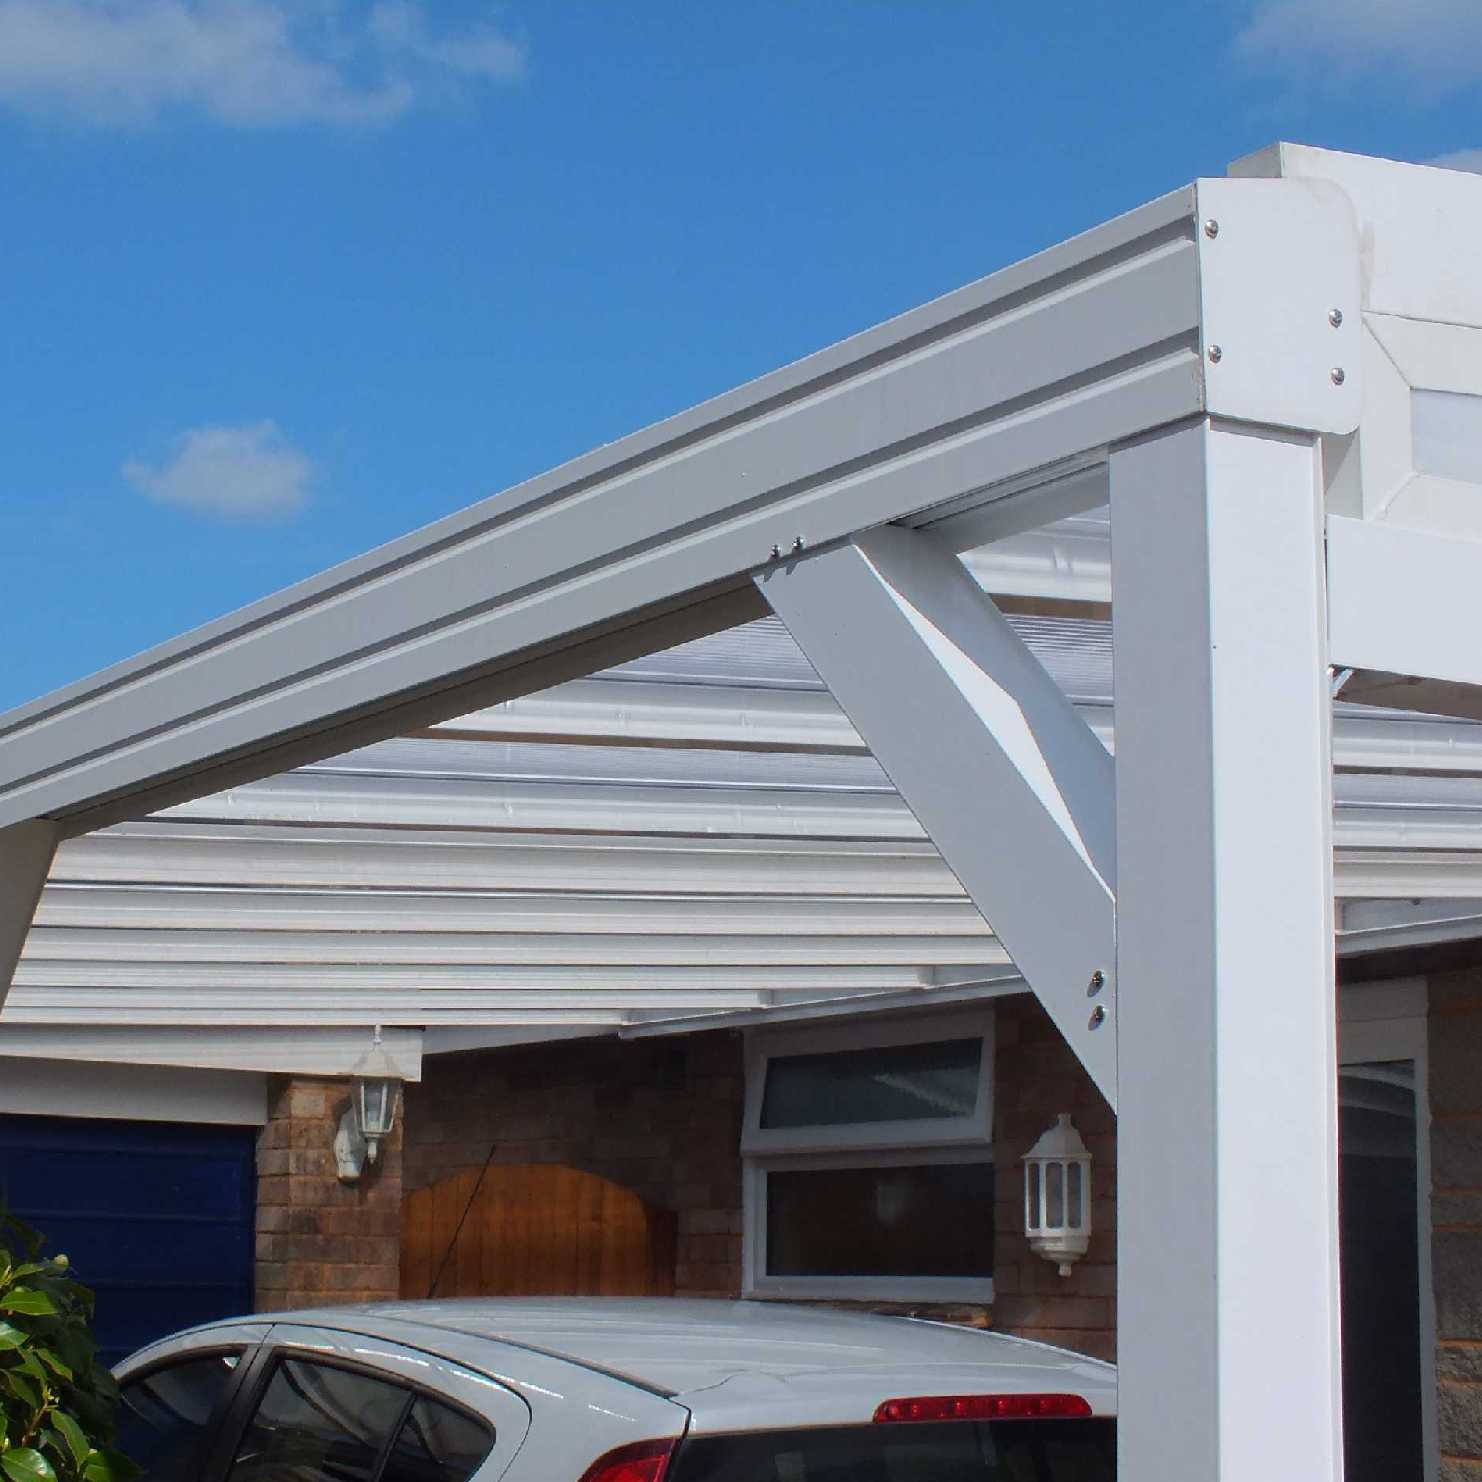 Great deals on Omega Smart White Lean-To Canopy with 16mm Polycarbonate Glazing - 5.6m (W) x 3.5m (P), (3) Supporting Posts